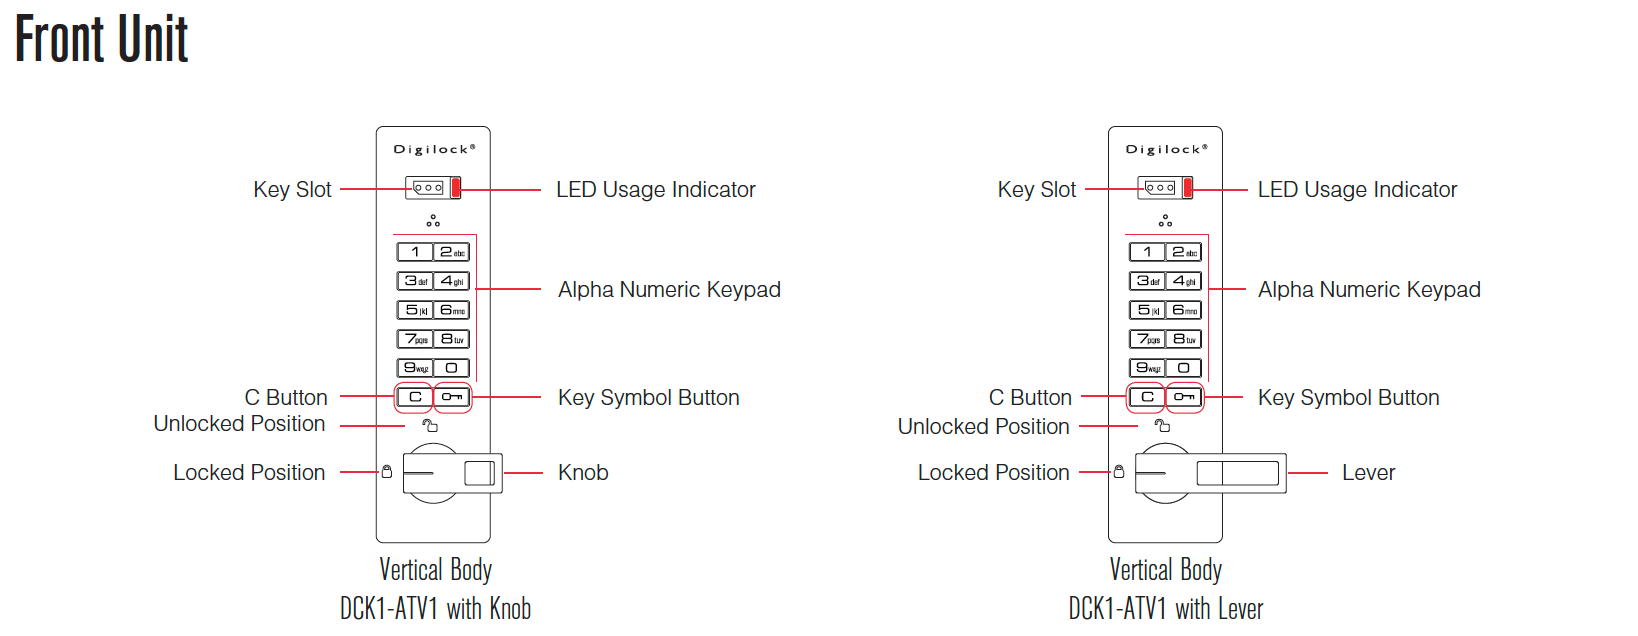 Lock Overview